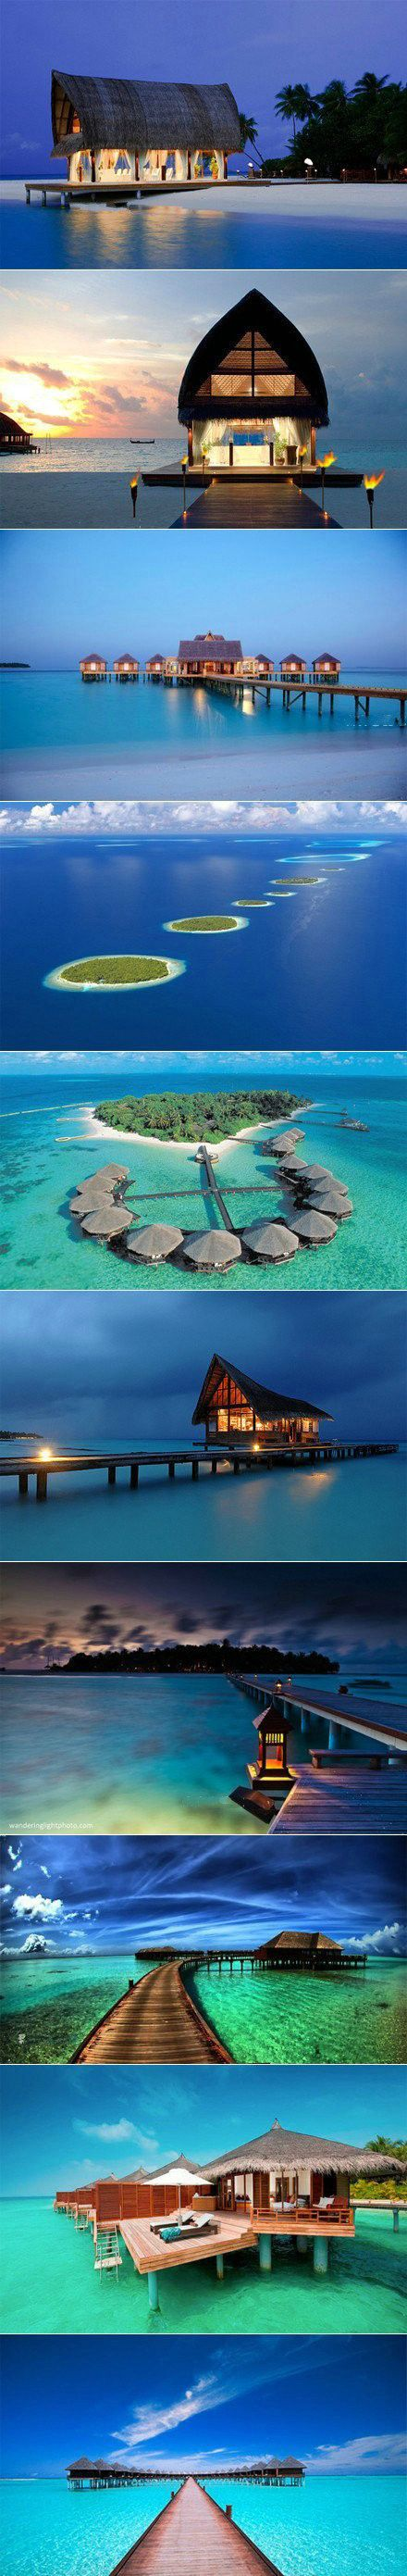 VACATION IN MALDIVES. HECk YES.